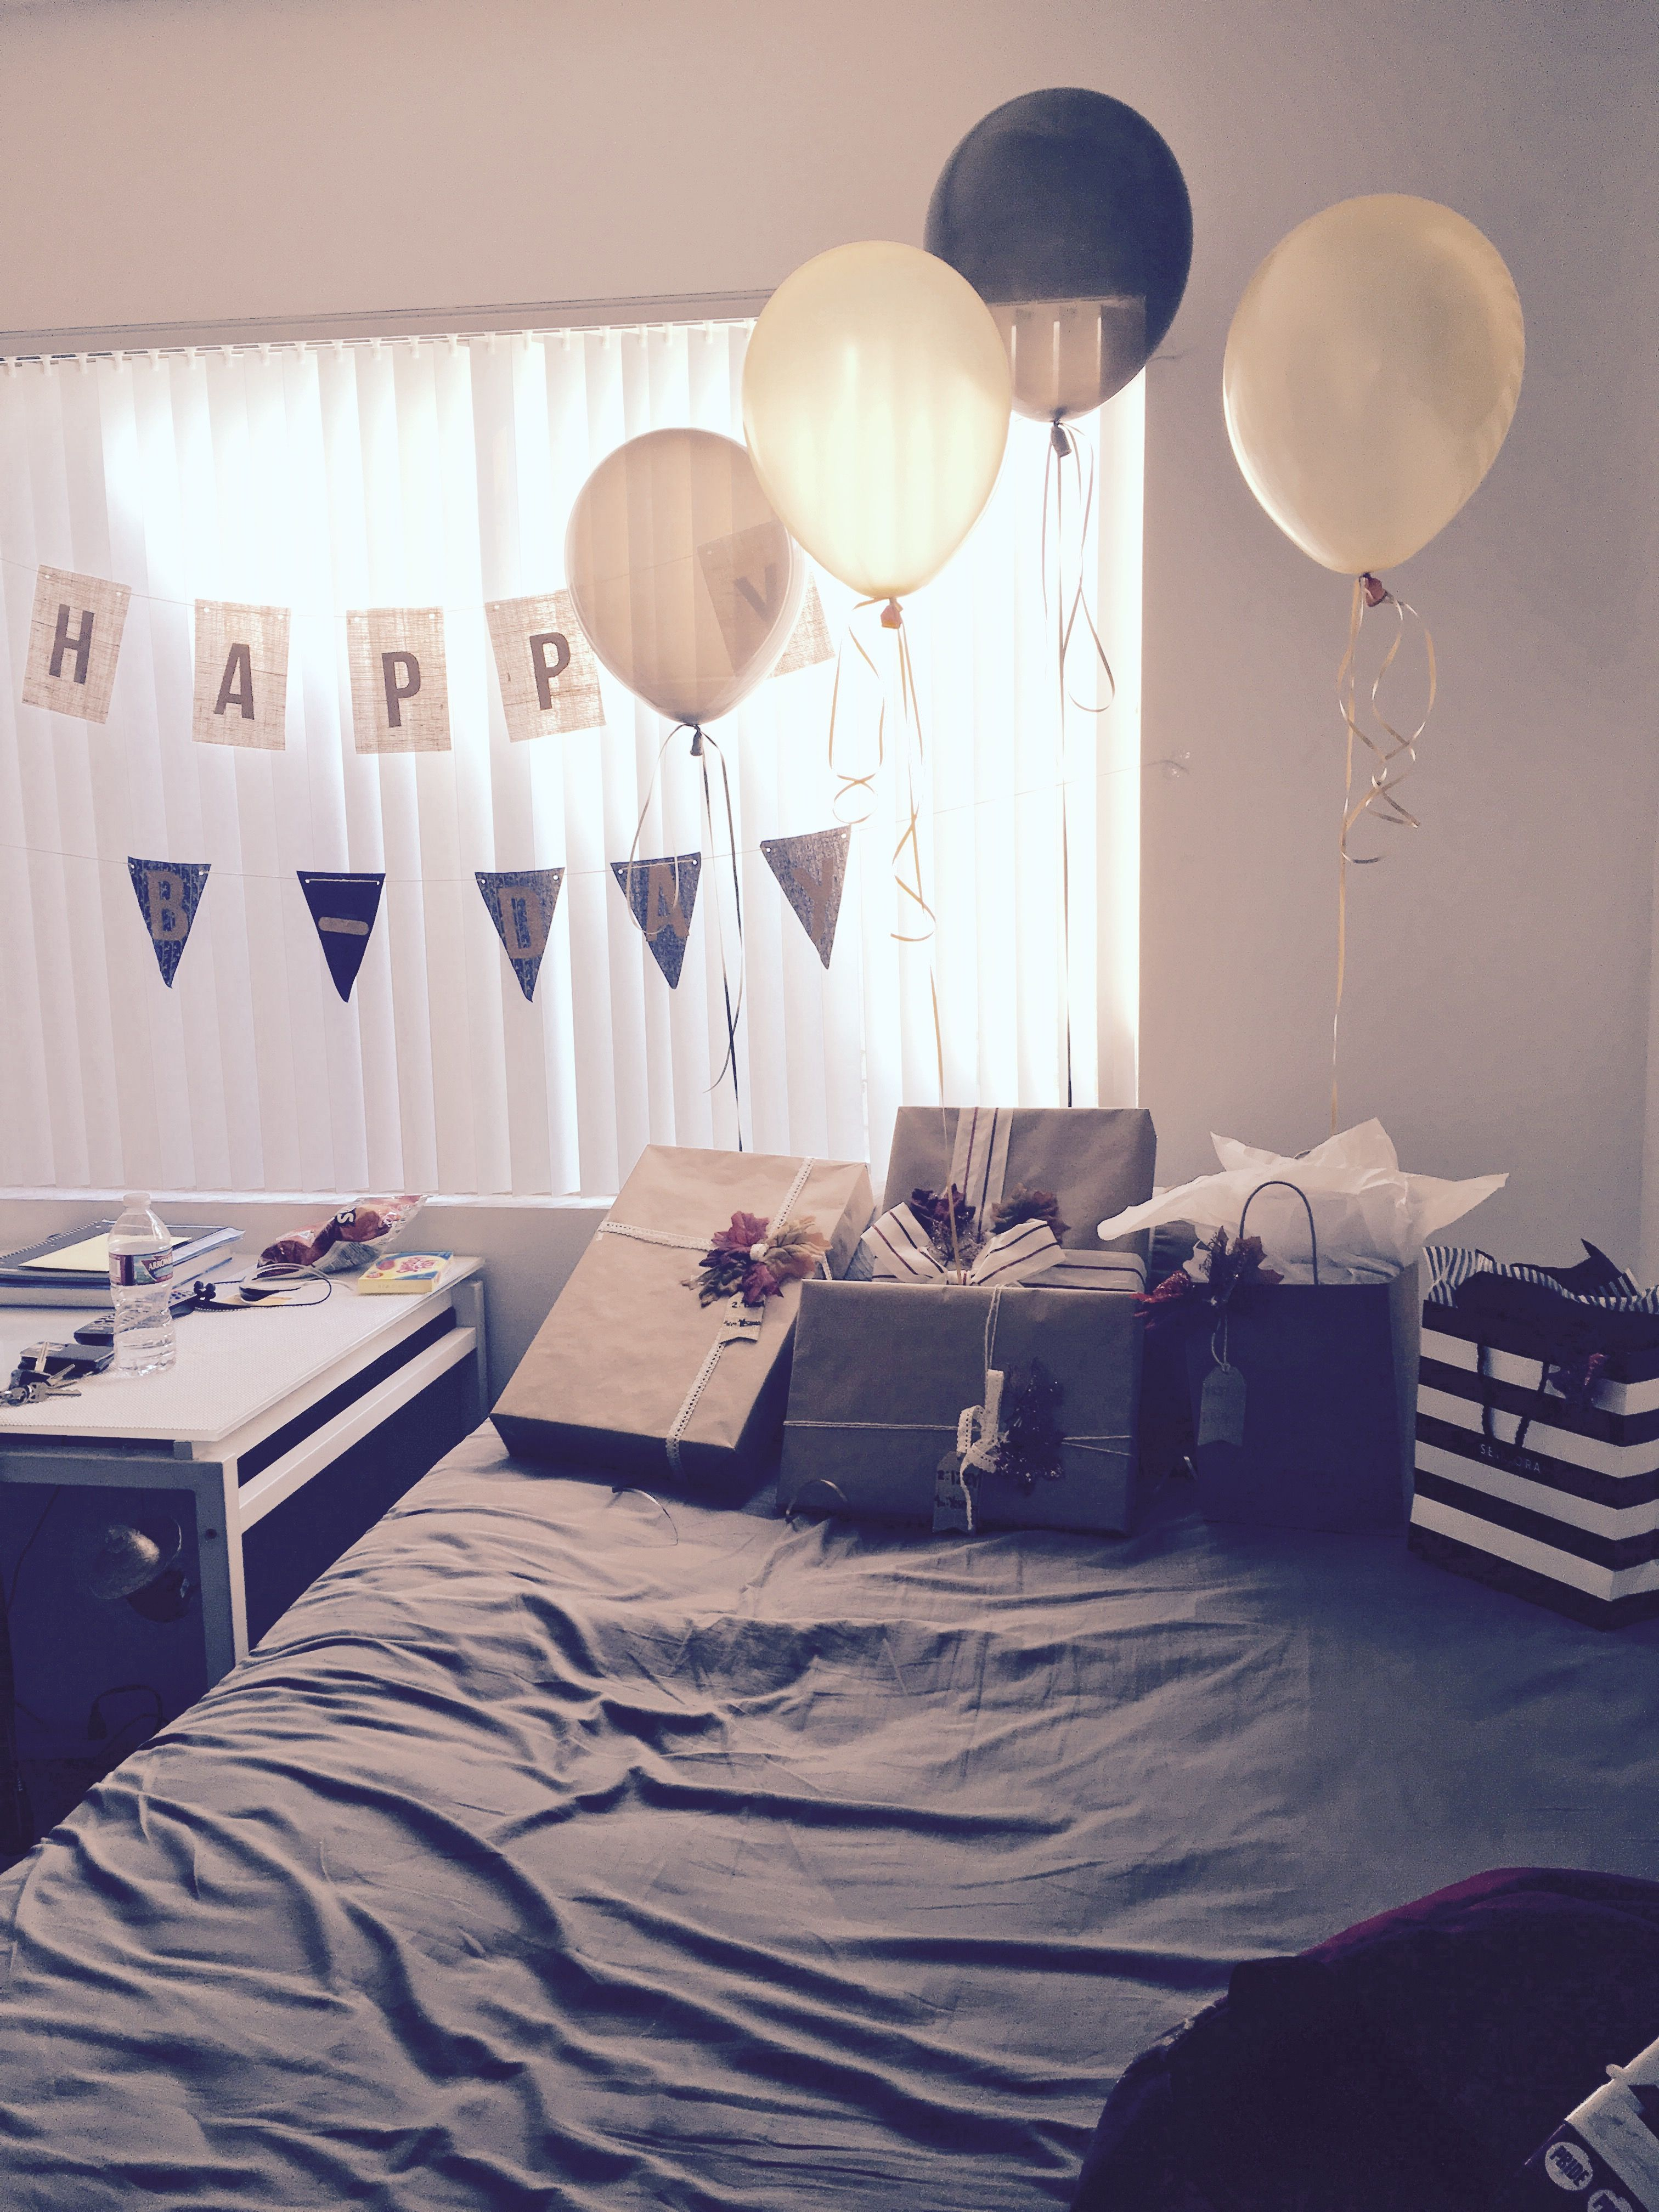 Presents Birthday Surprises For Him Surprise Boyfriend Hubby Best Friend Also Made Cupcakes Got Balloons And